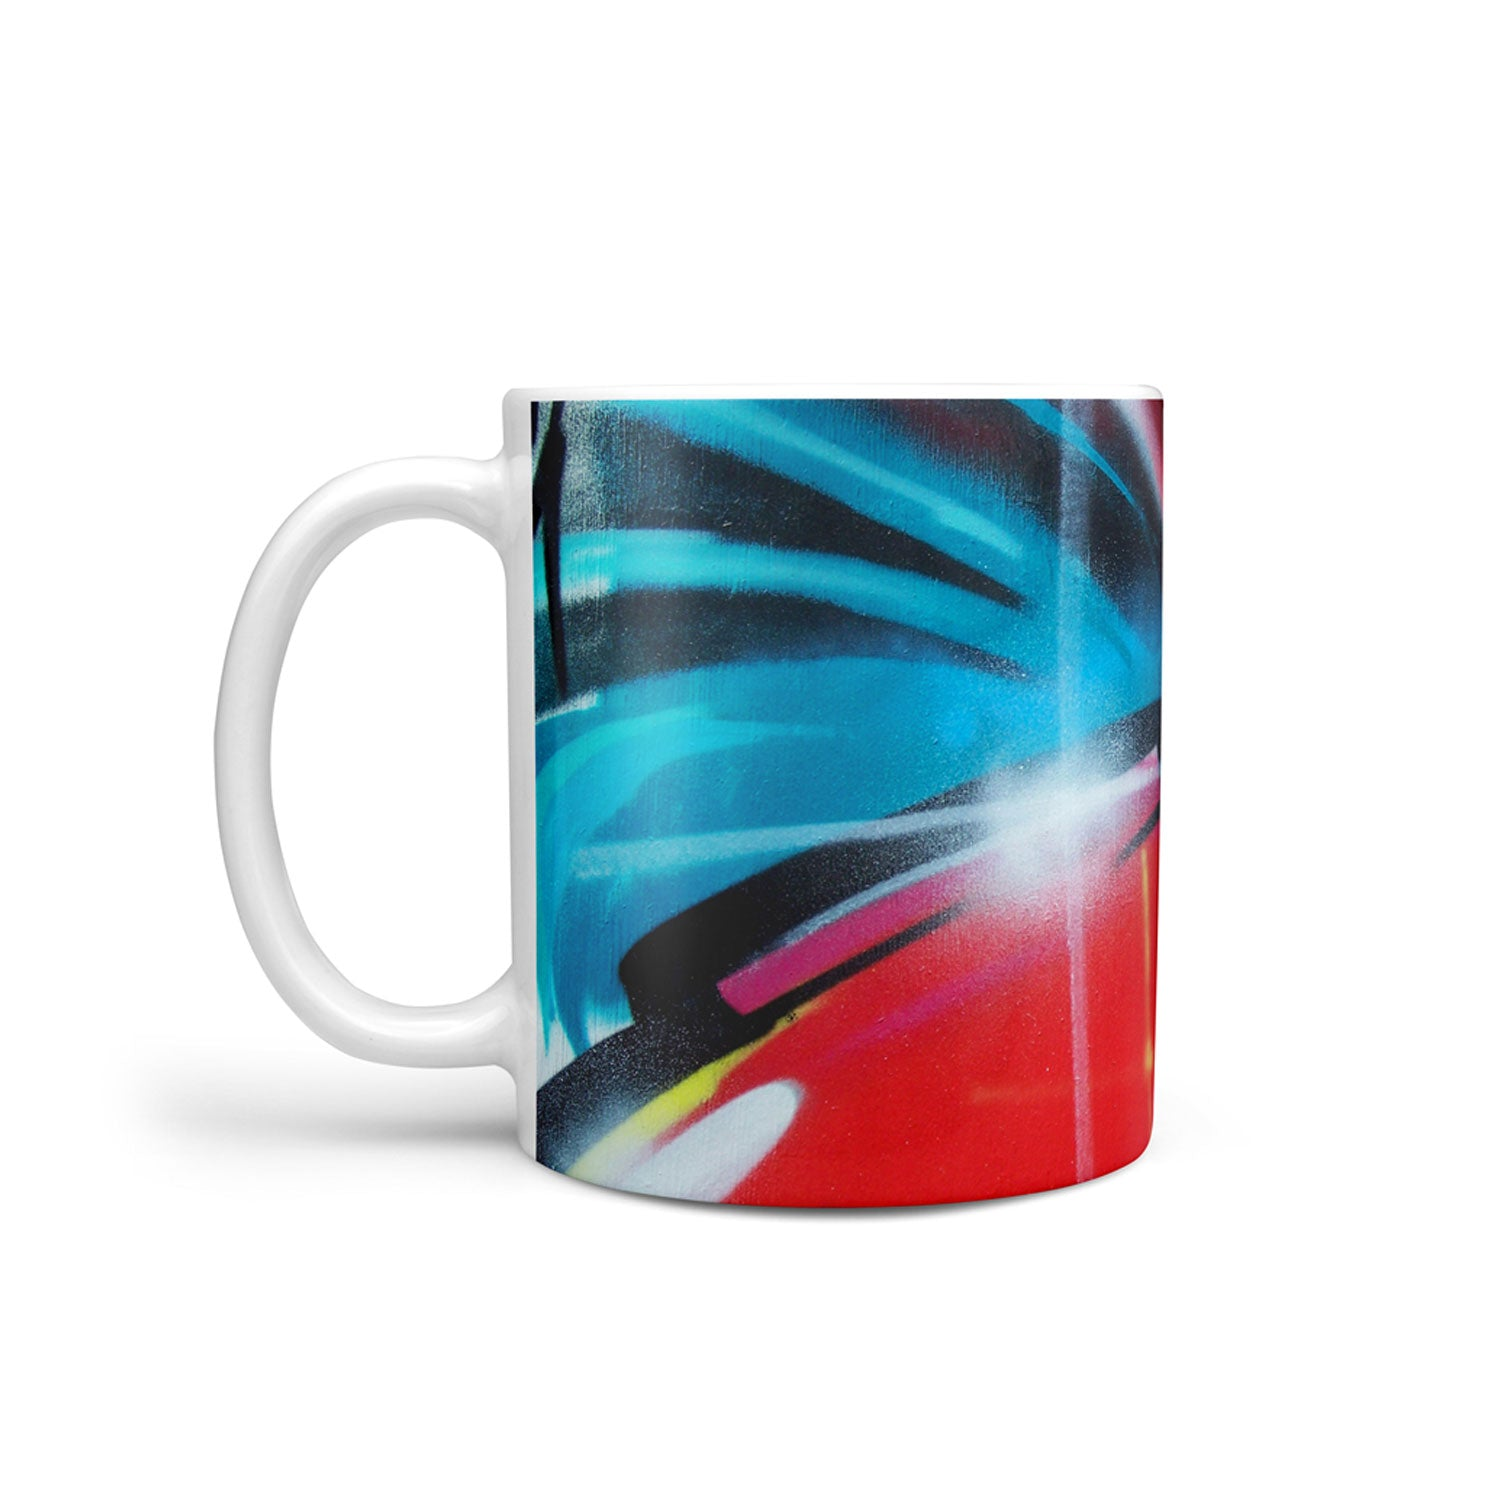 mug with spraypaint design in red, blue and yellow